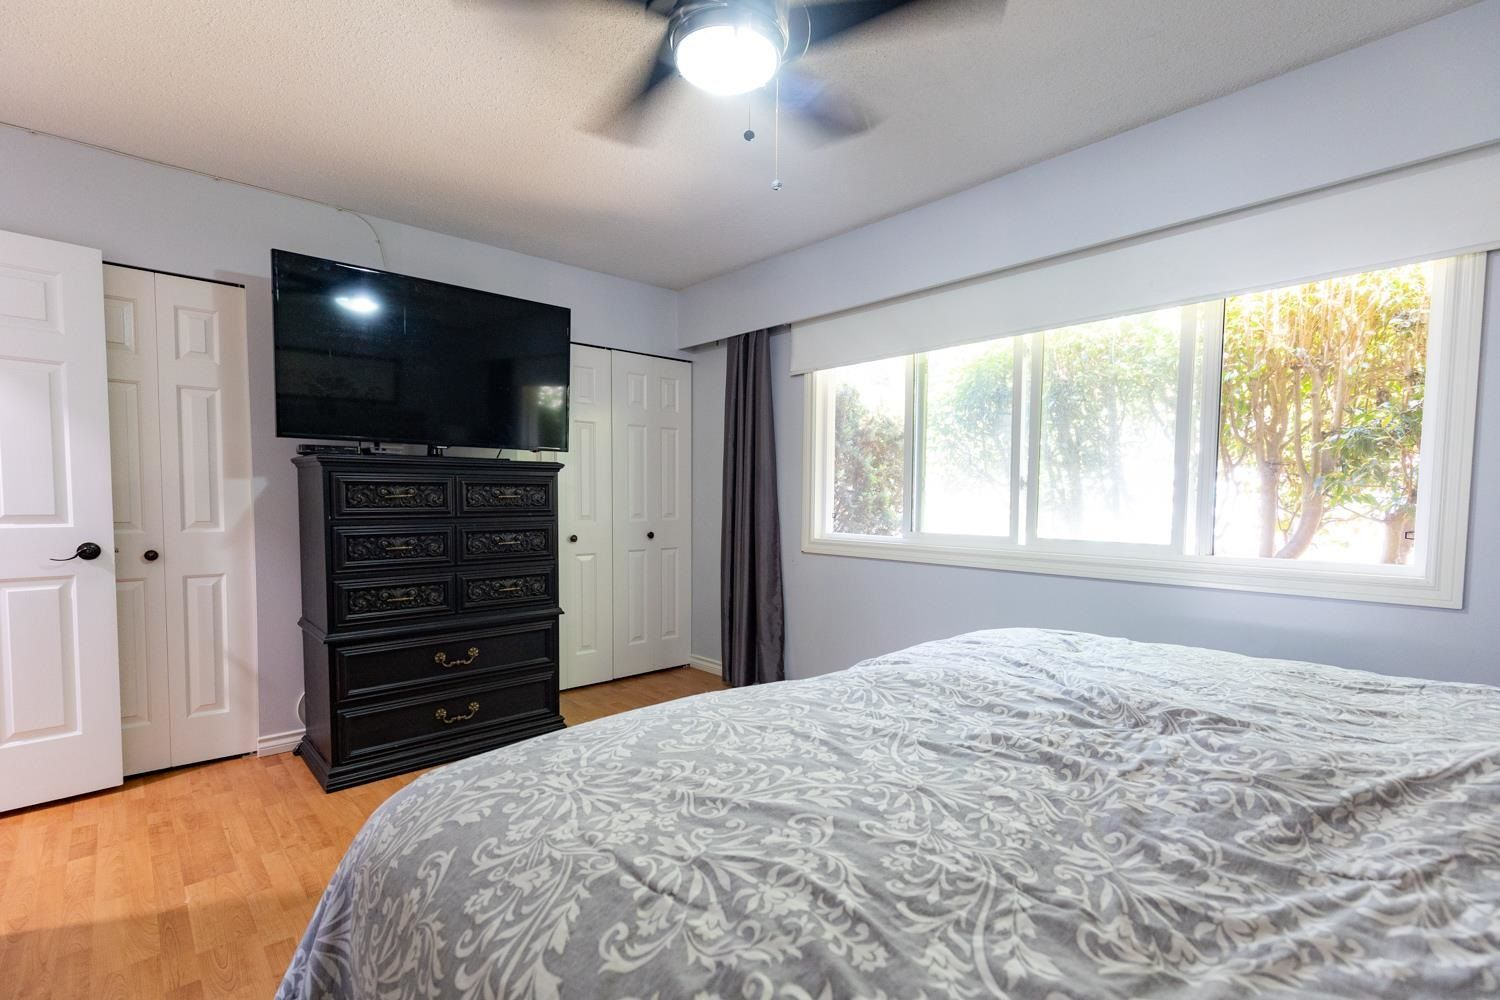 Photo 14: Photos: 2246 BEDFORD Place in Abbotsford: Abbotsford West House for sale : MLS®# R2602902